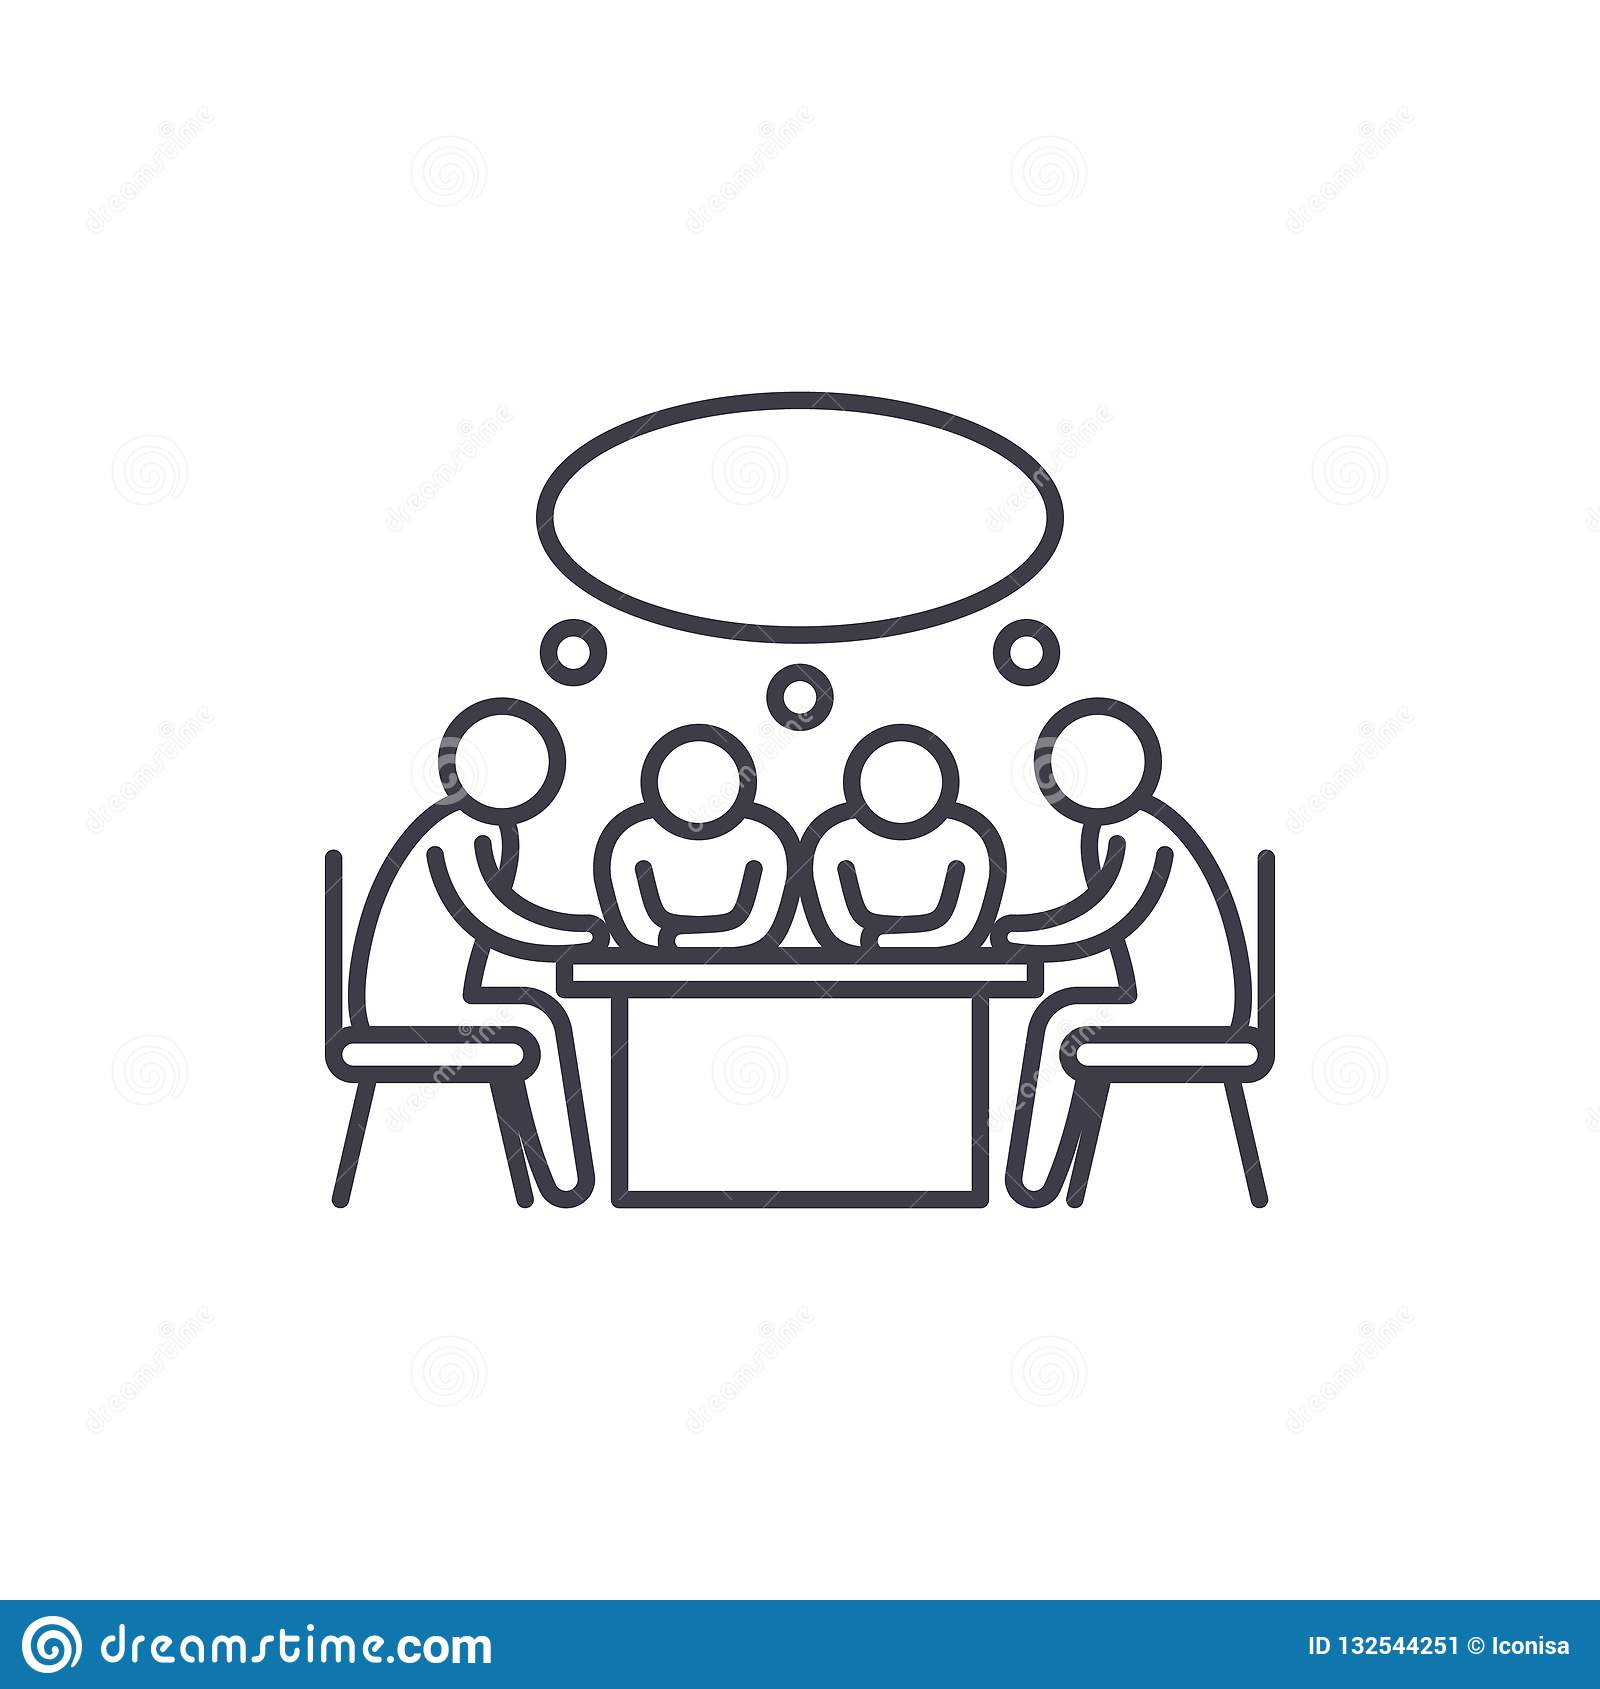 Small business meeting line icon concept. Small business meeting vector linear illustration, symbol, sign